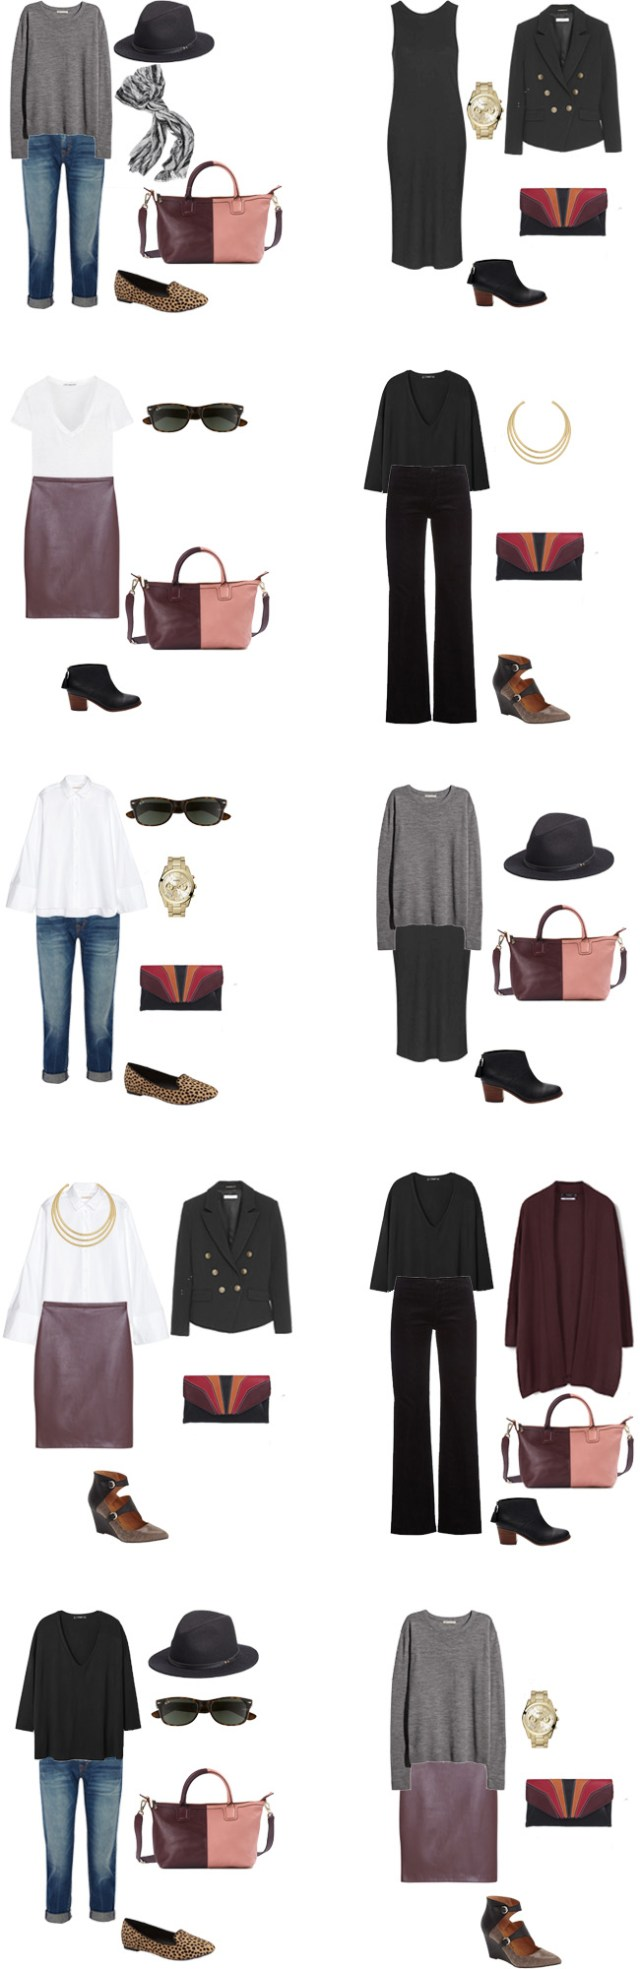 What to Wear for a Business Outfits 11-20 #travel #traveltips #packinglight #travellight